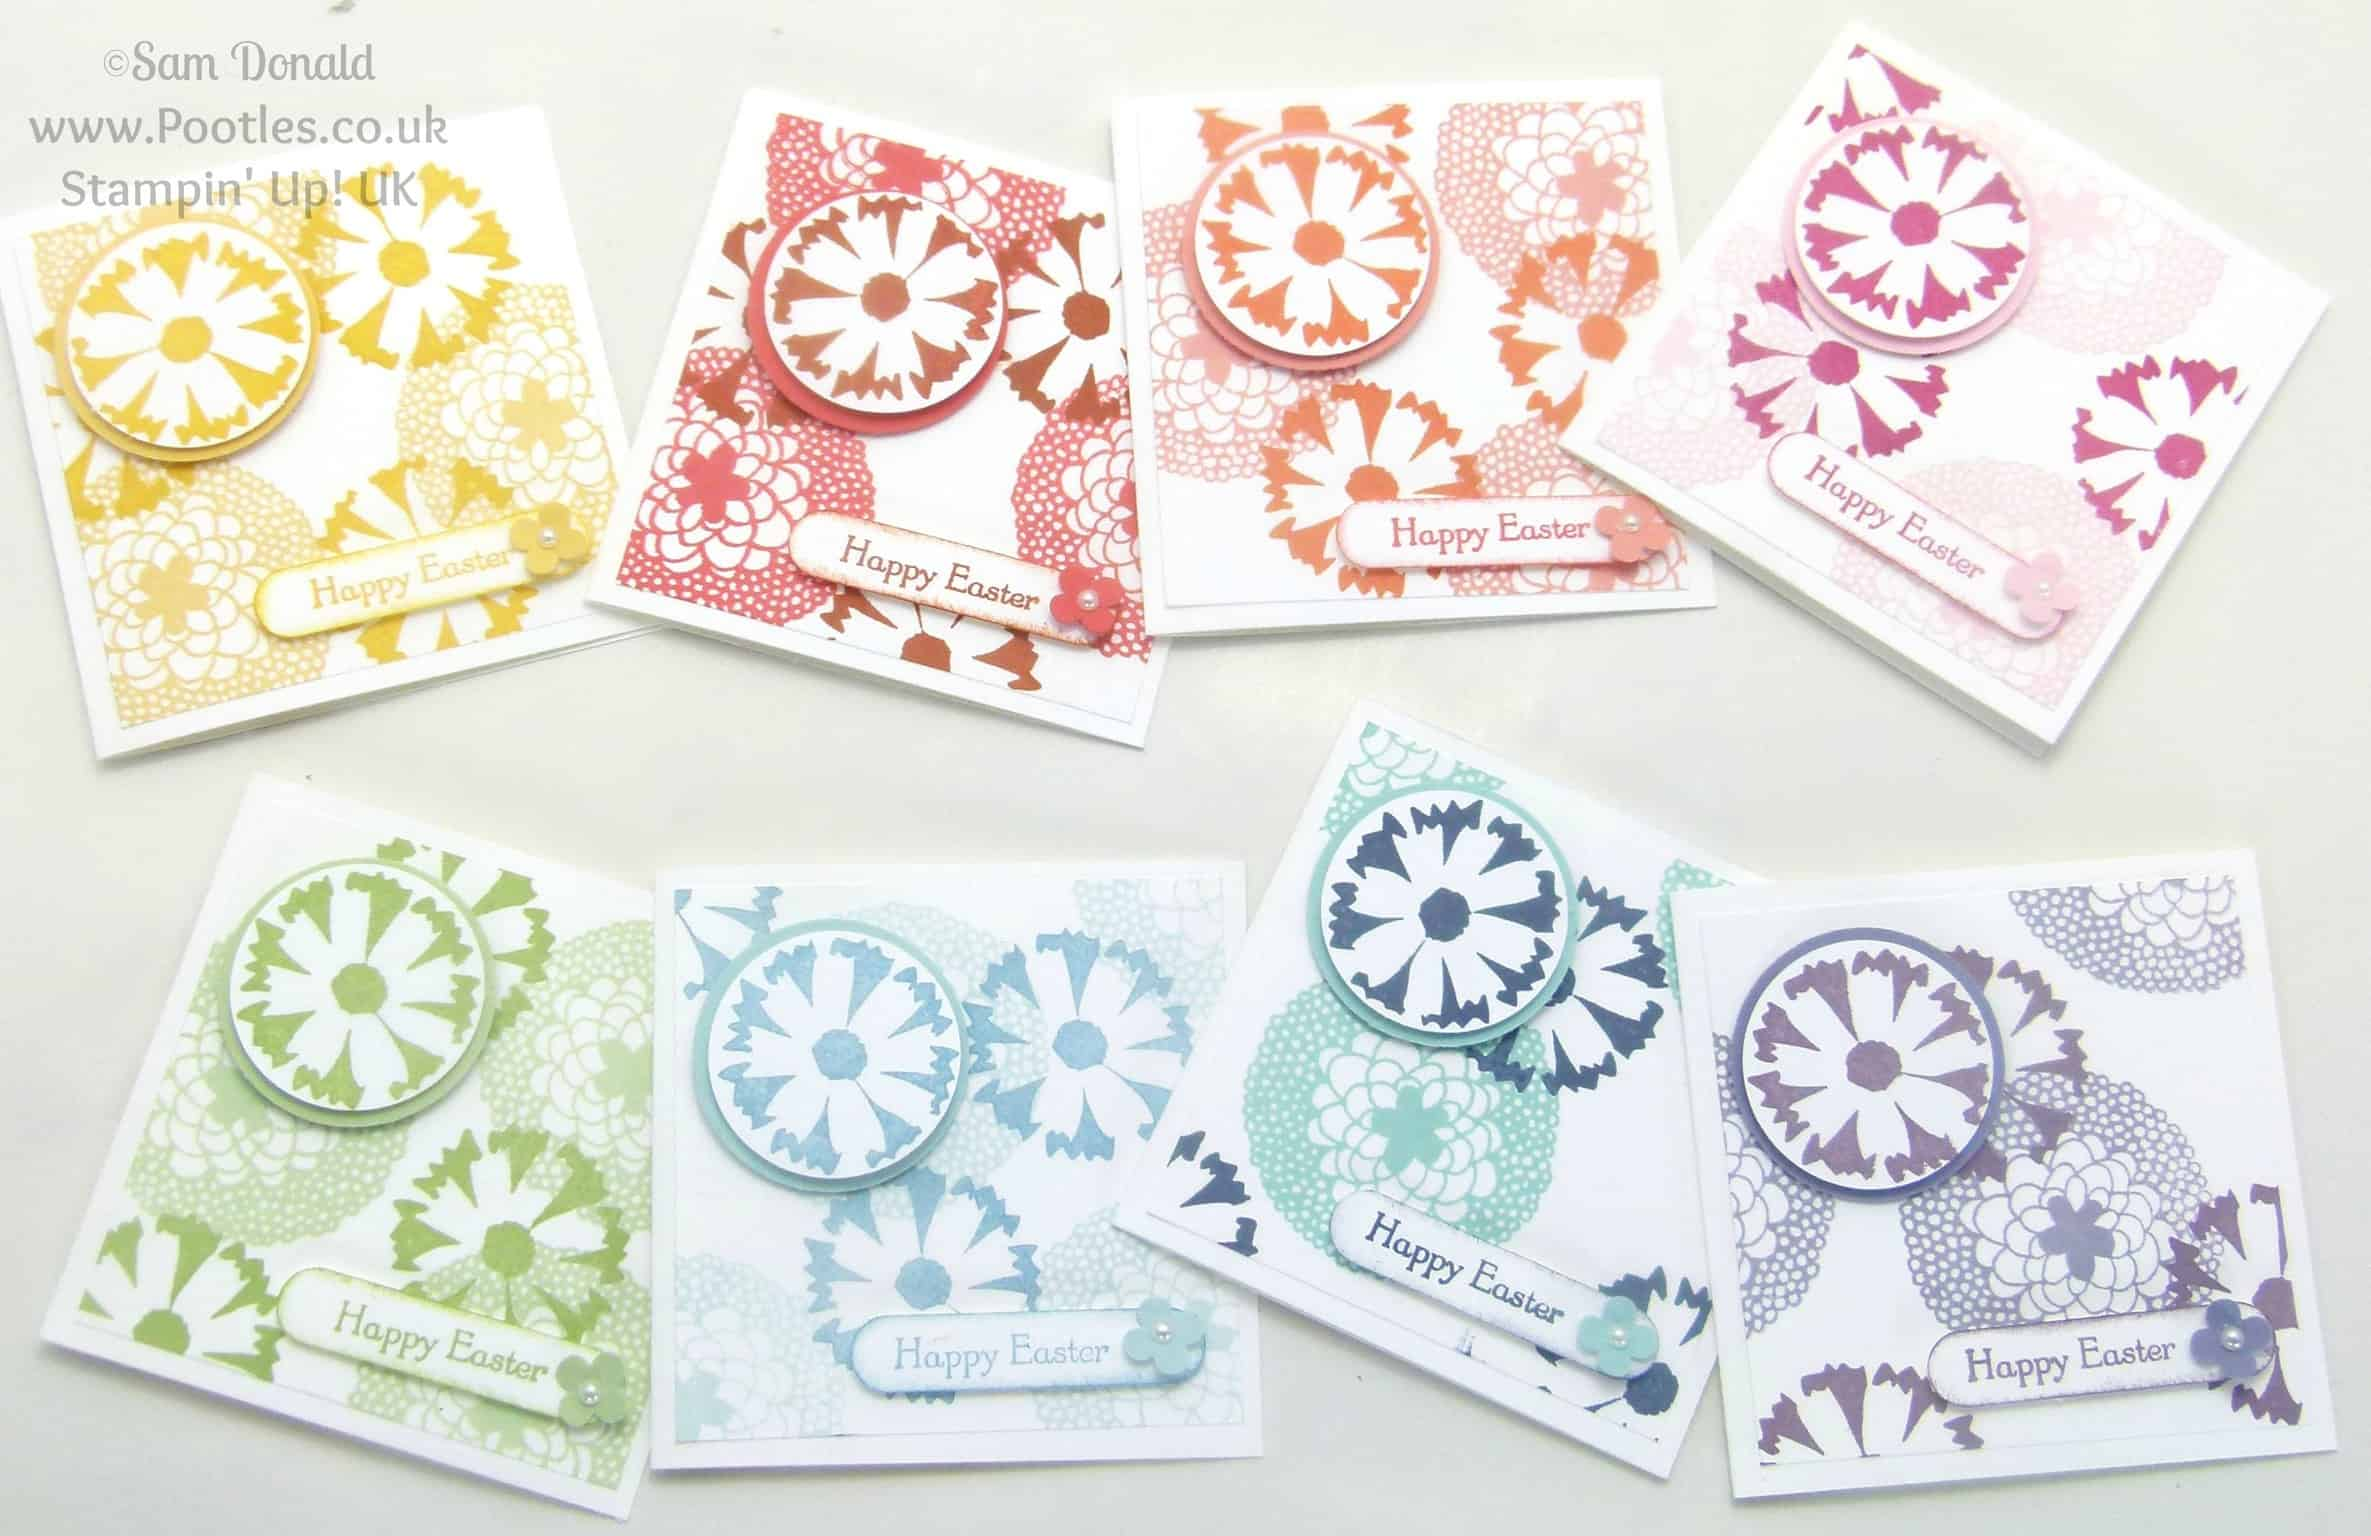 POOTLES Stampin' Up! UK Petal Parade 3x3 Easter Card Showcase Full Collection